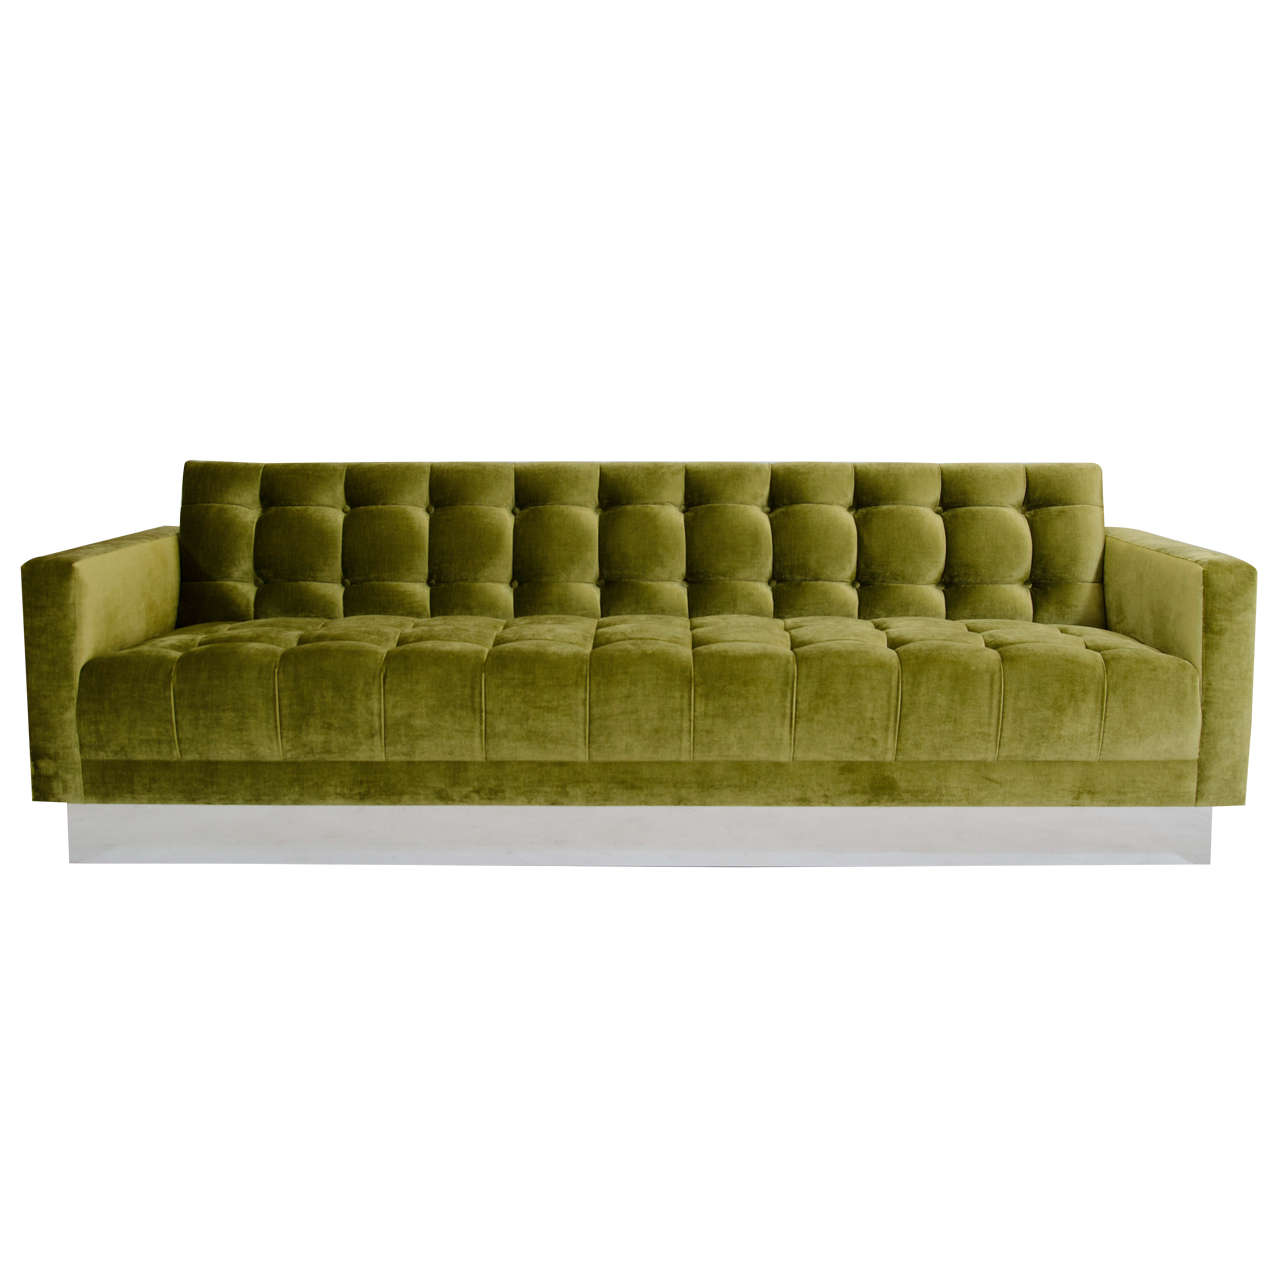 Deeply Tufted Floating Velvet Sofa For Sale